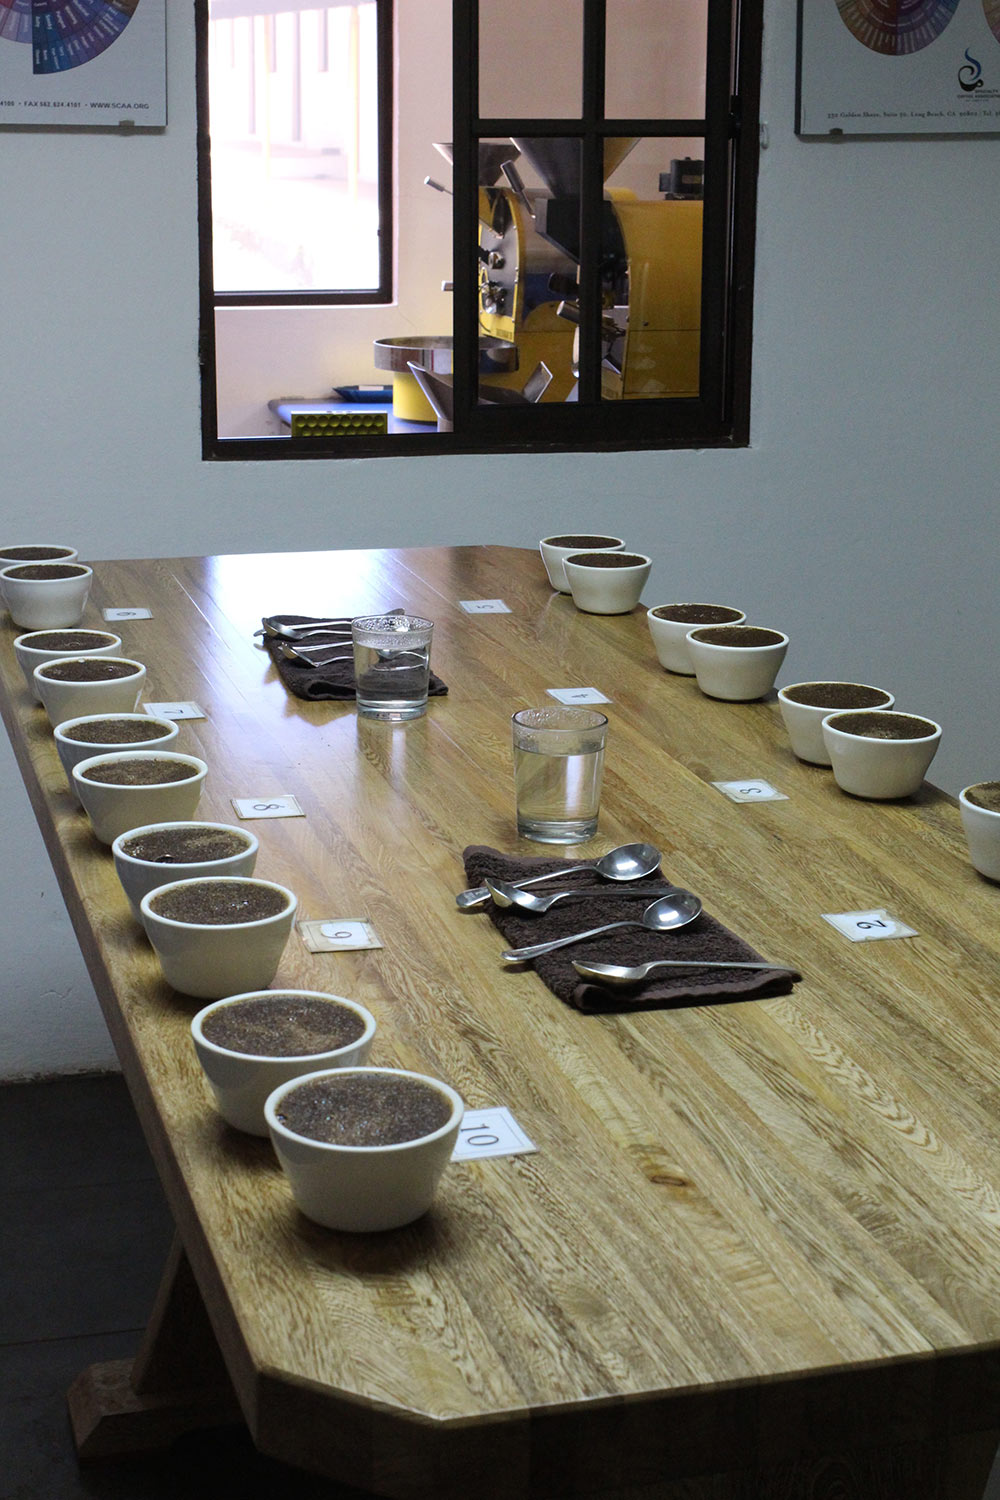 A table full of samples from the mills El Manzano processes.